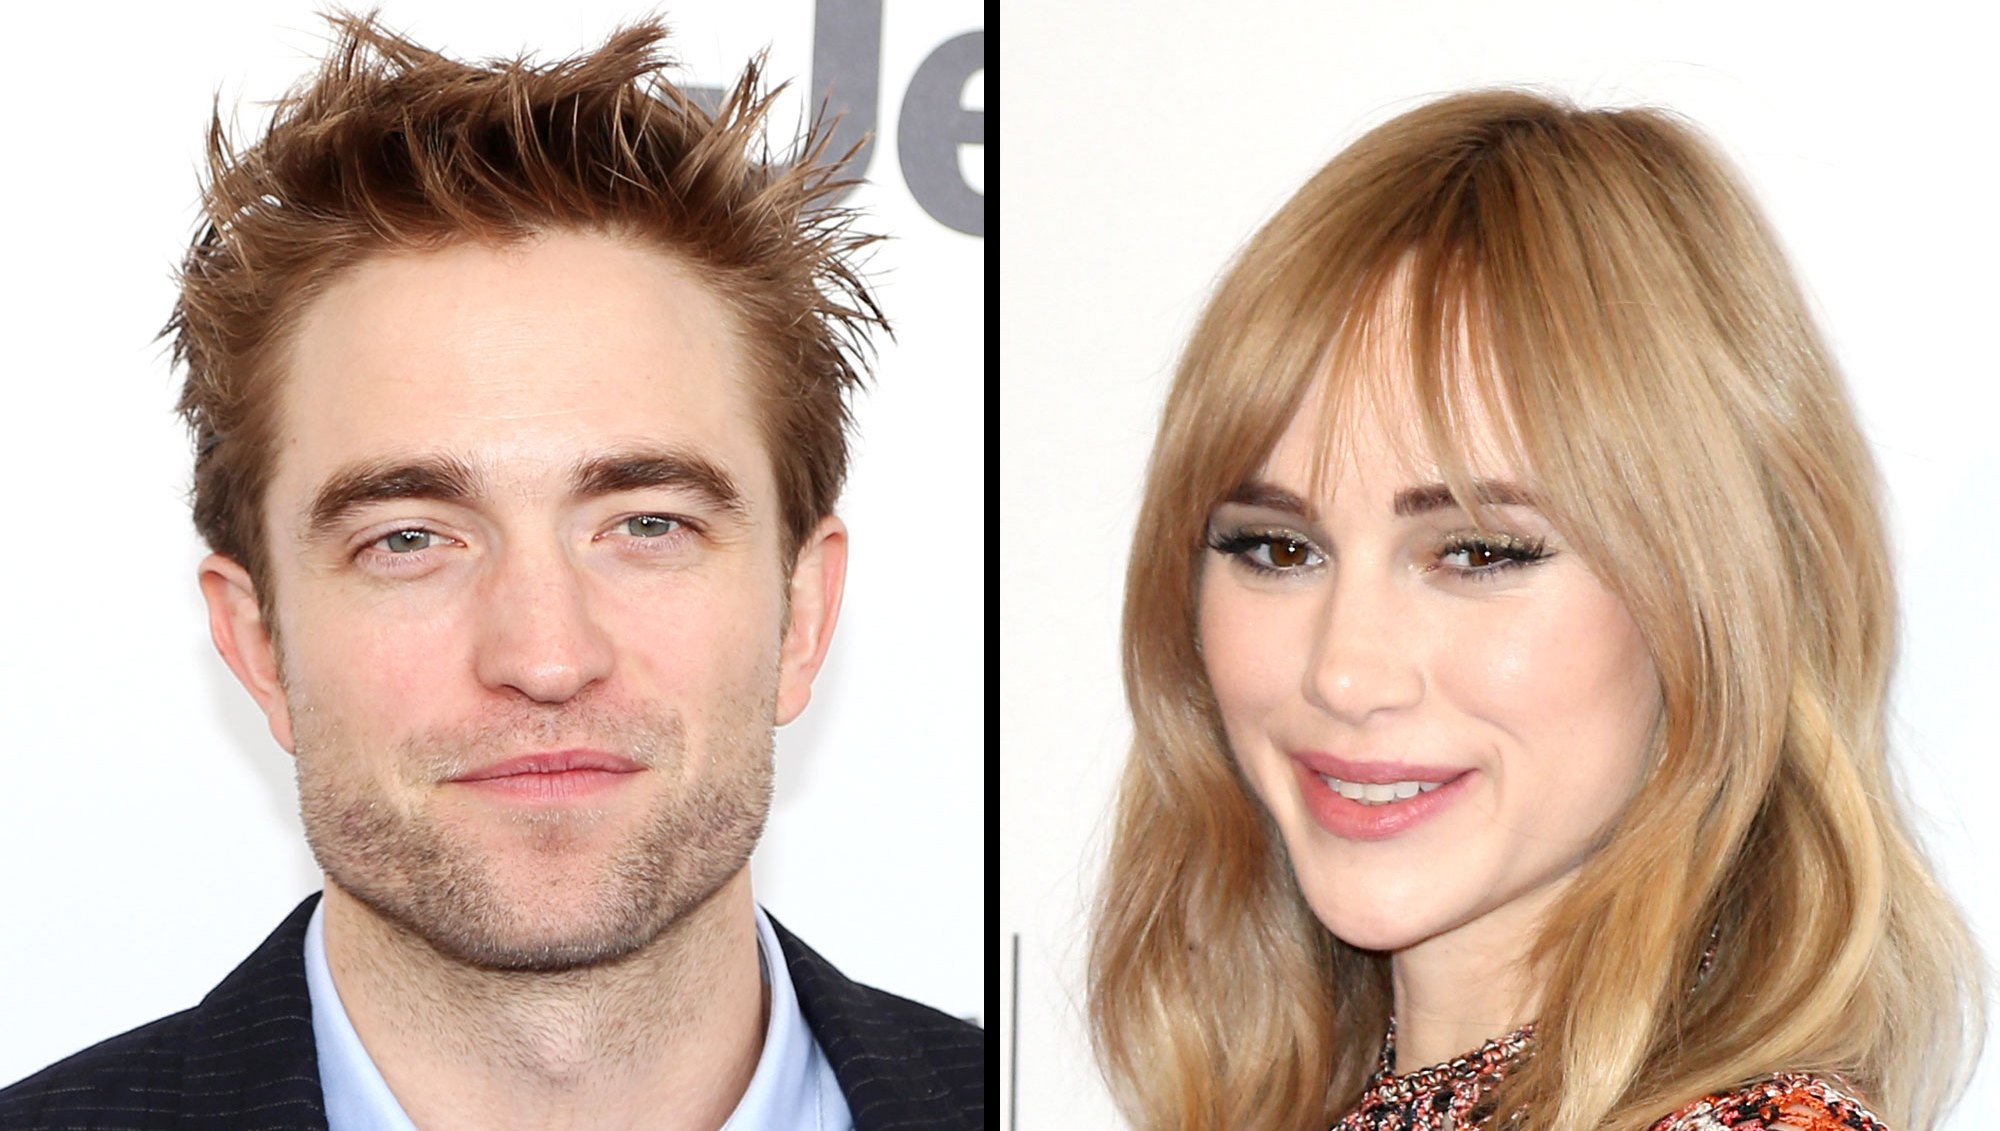 Robert Pattinson Suki Waterhouse new couple alert